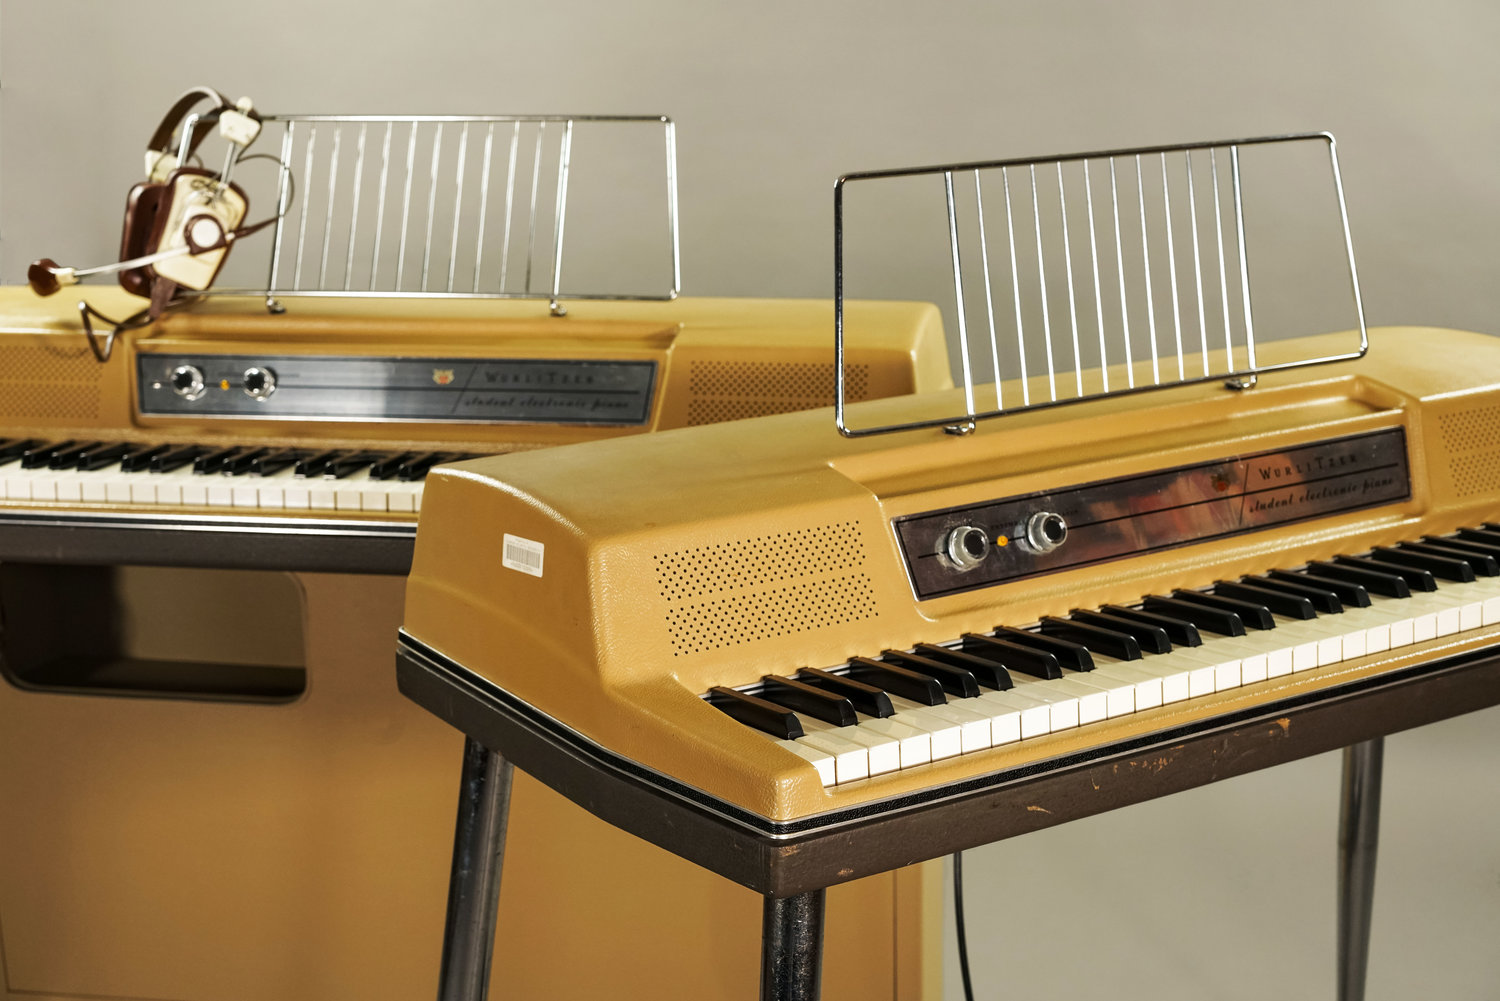 What's the Difference Between a Wurlitzer 200 and a 200a?